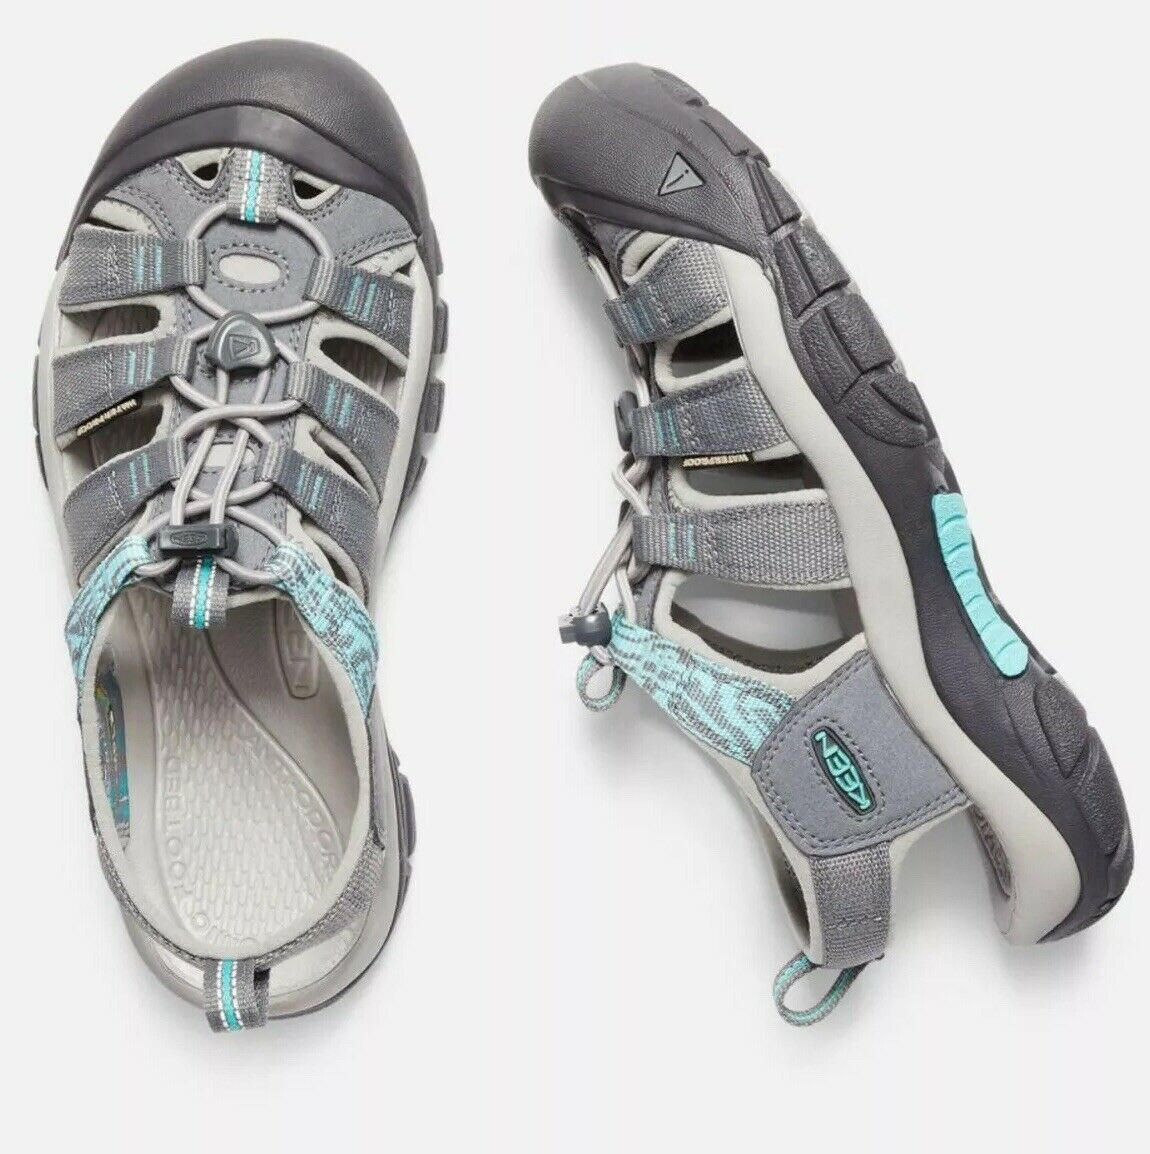 Woman's Keen Turquoise 39 8.5 Newport Hydro River shoes  Sneaker Retails for